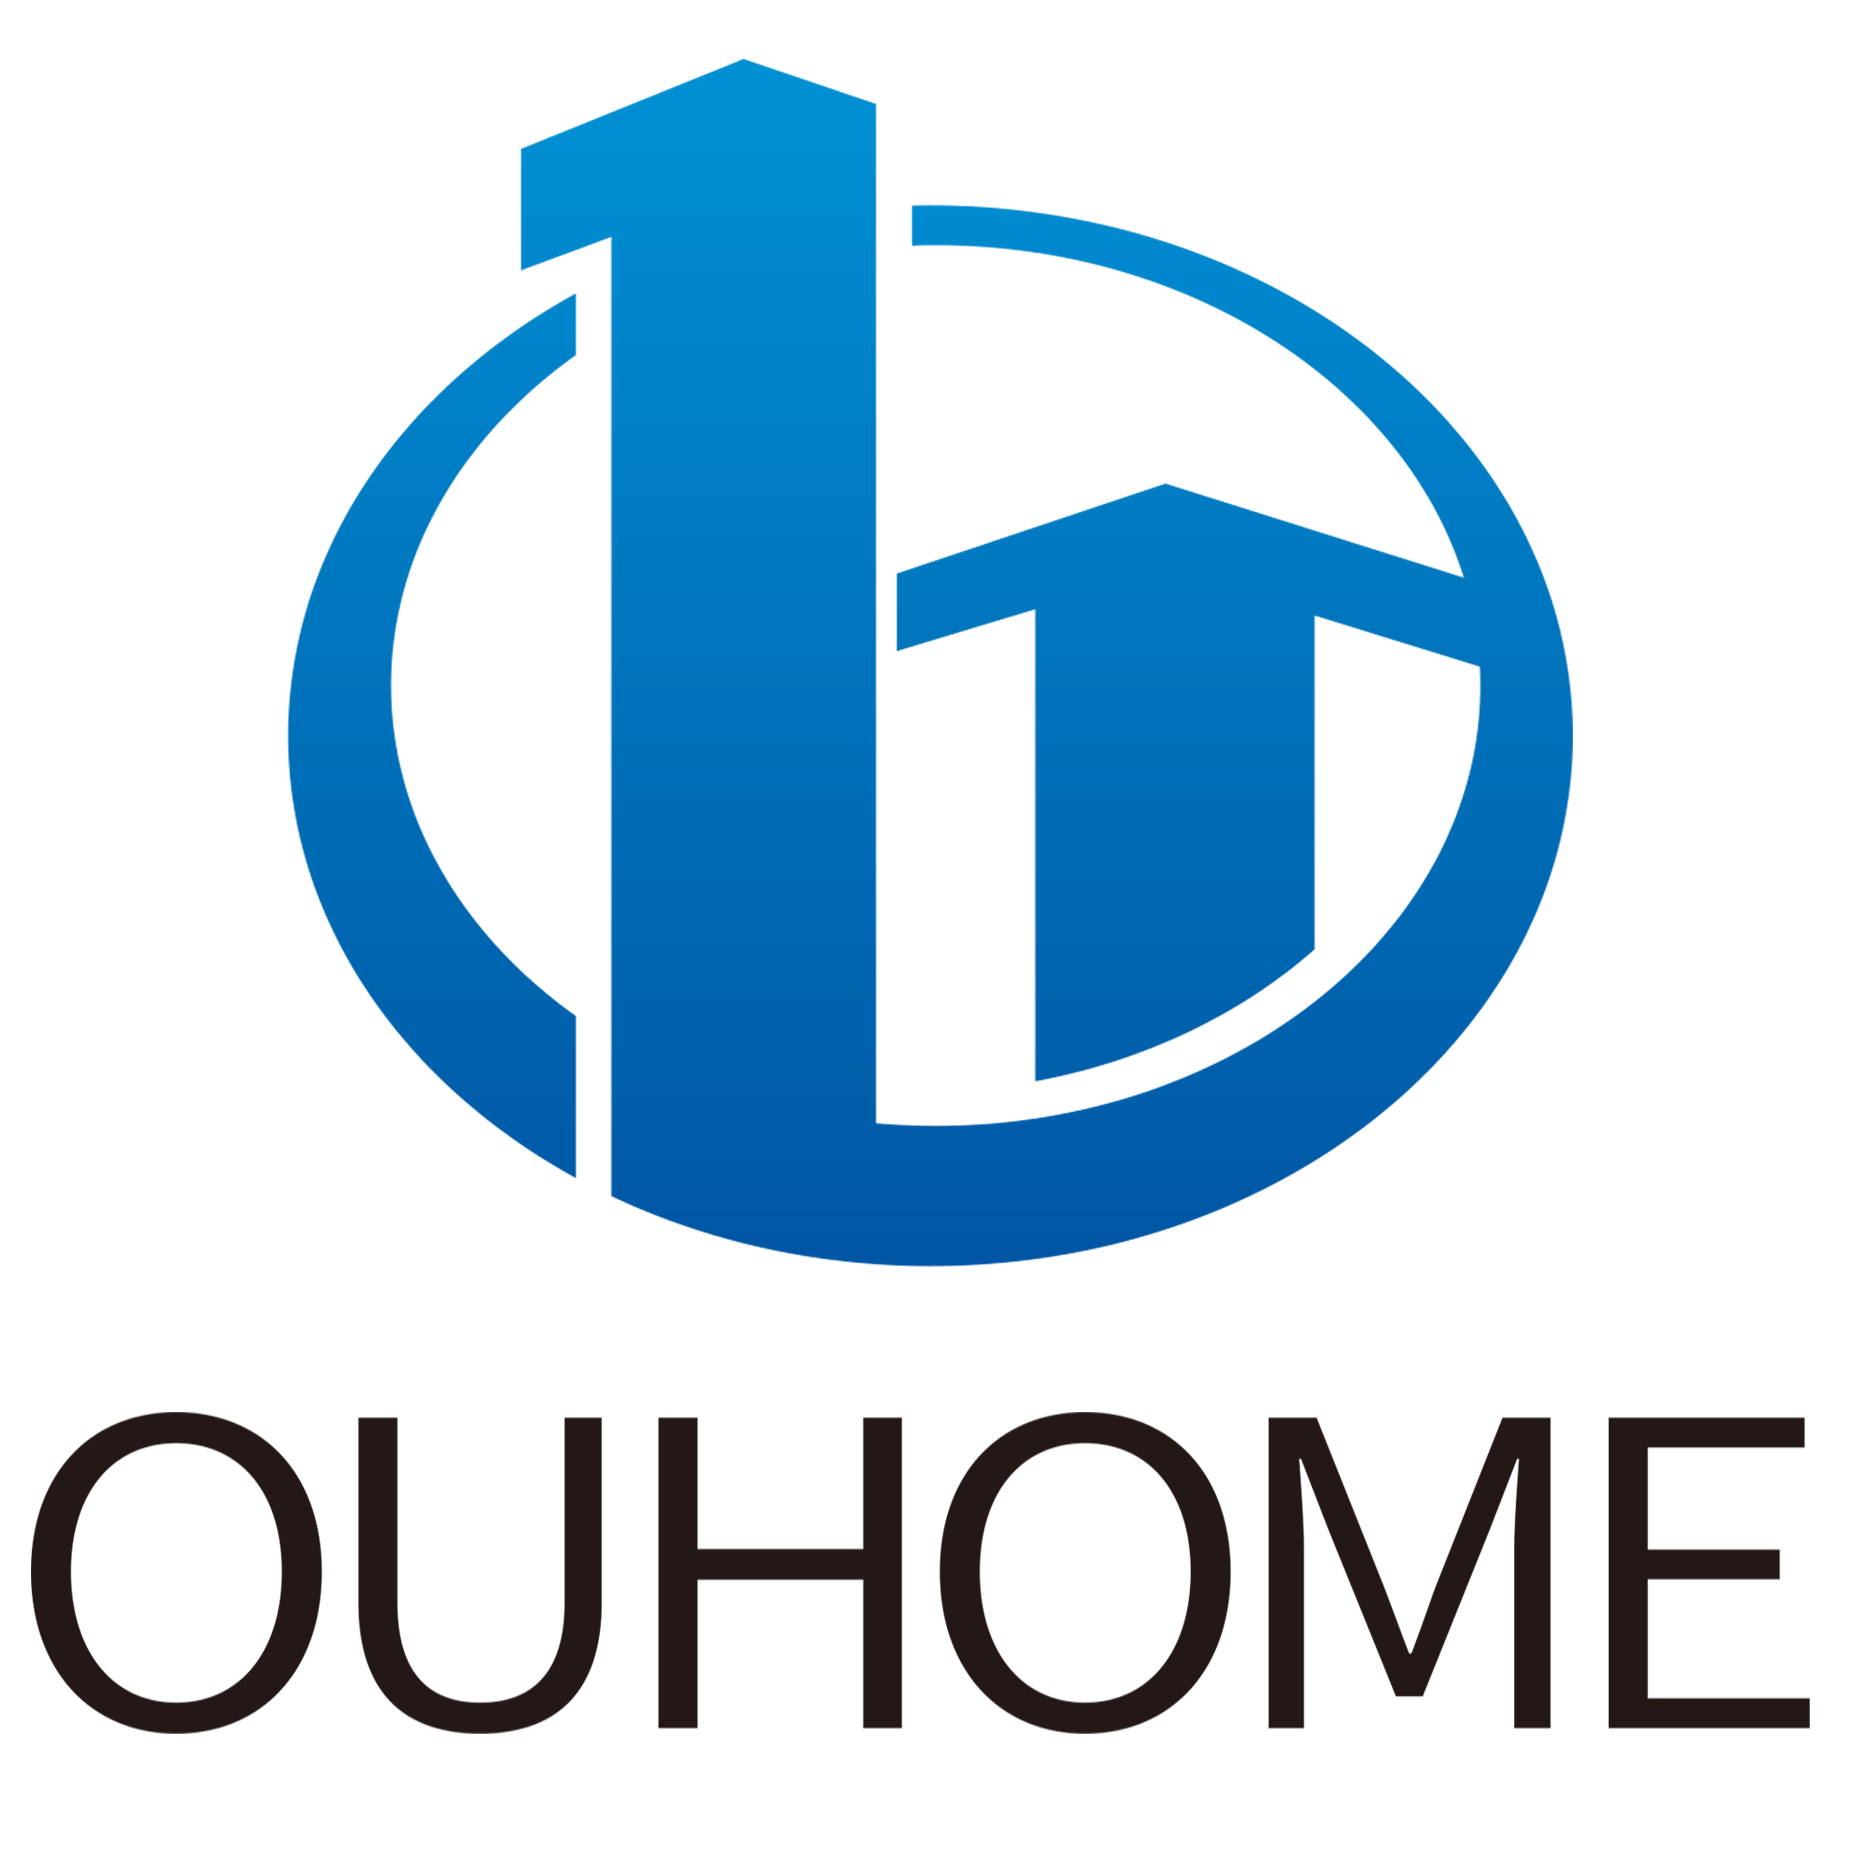 Ou Home Decoration Materials Co., Ltd